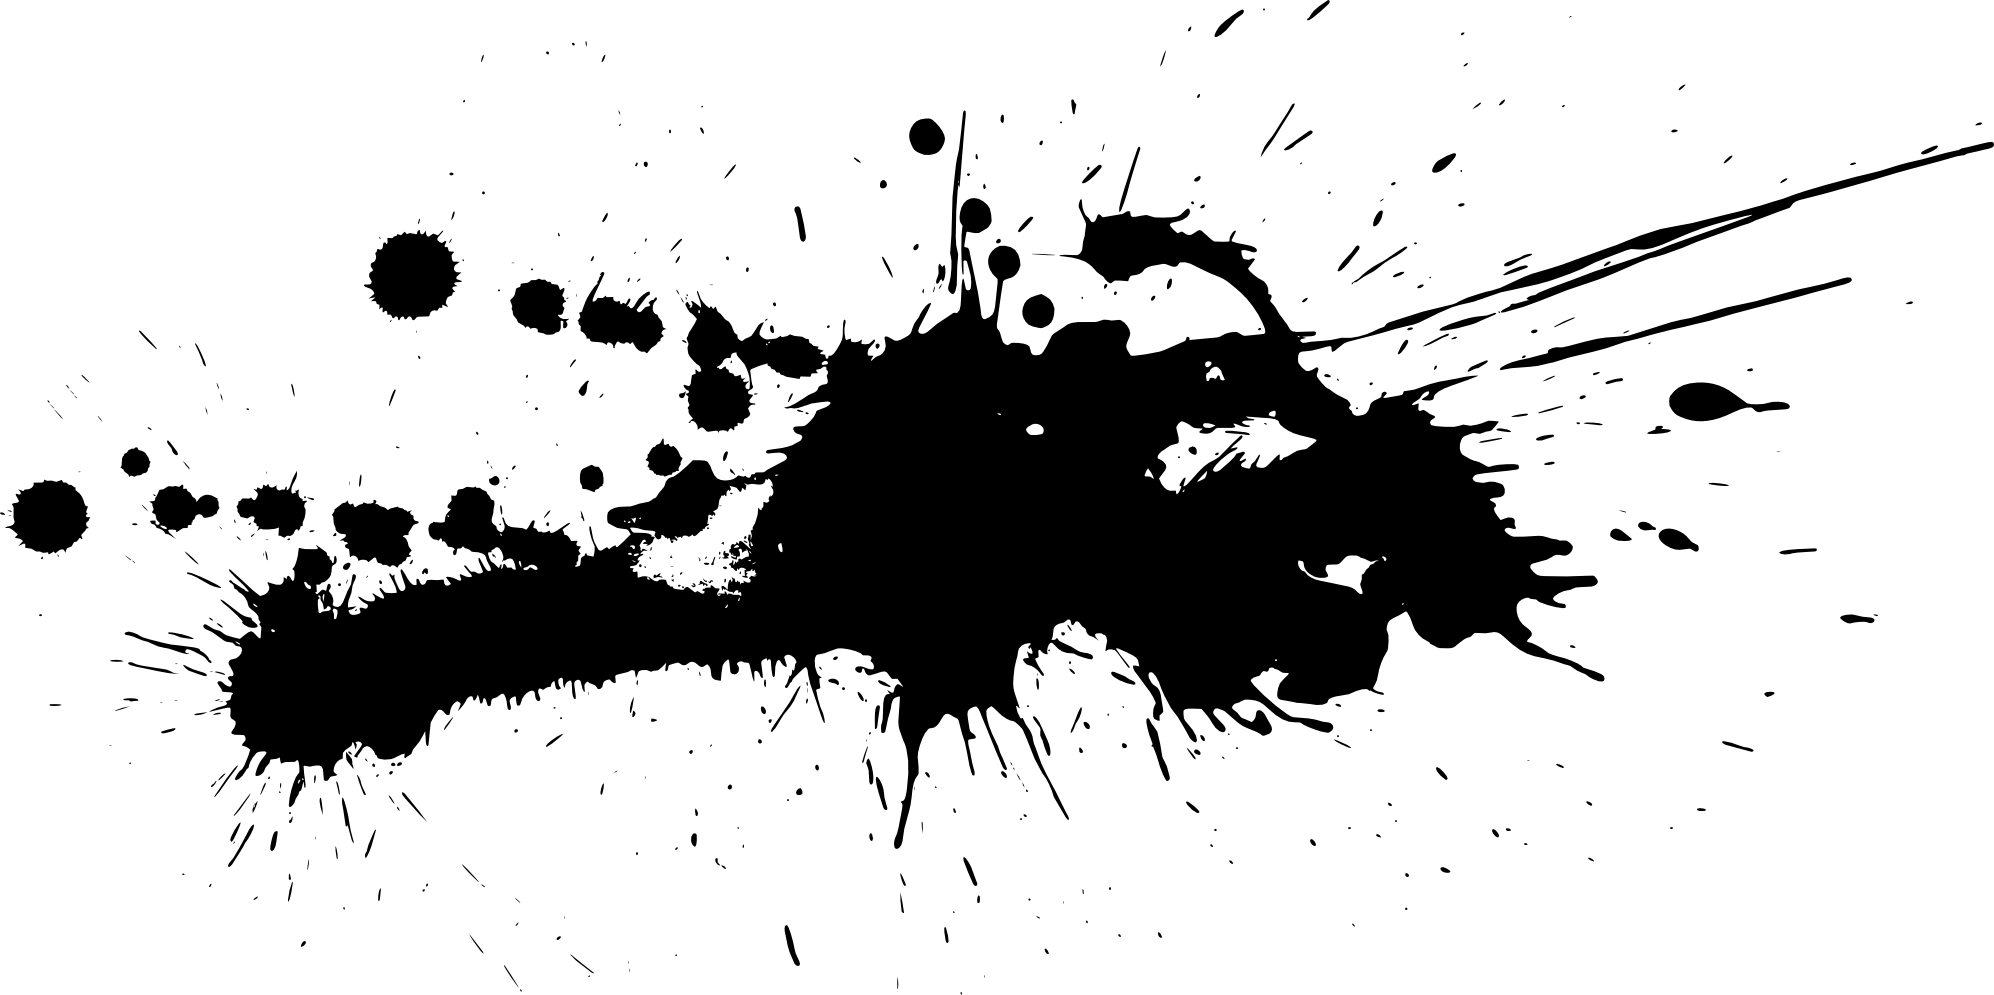 Black Paint Splatter Png imag